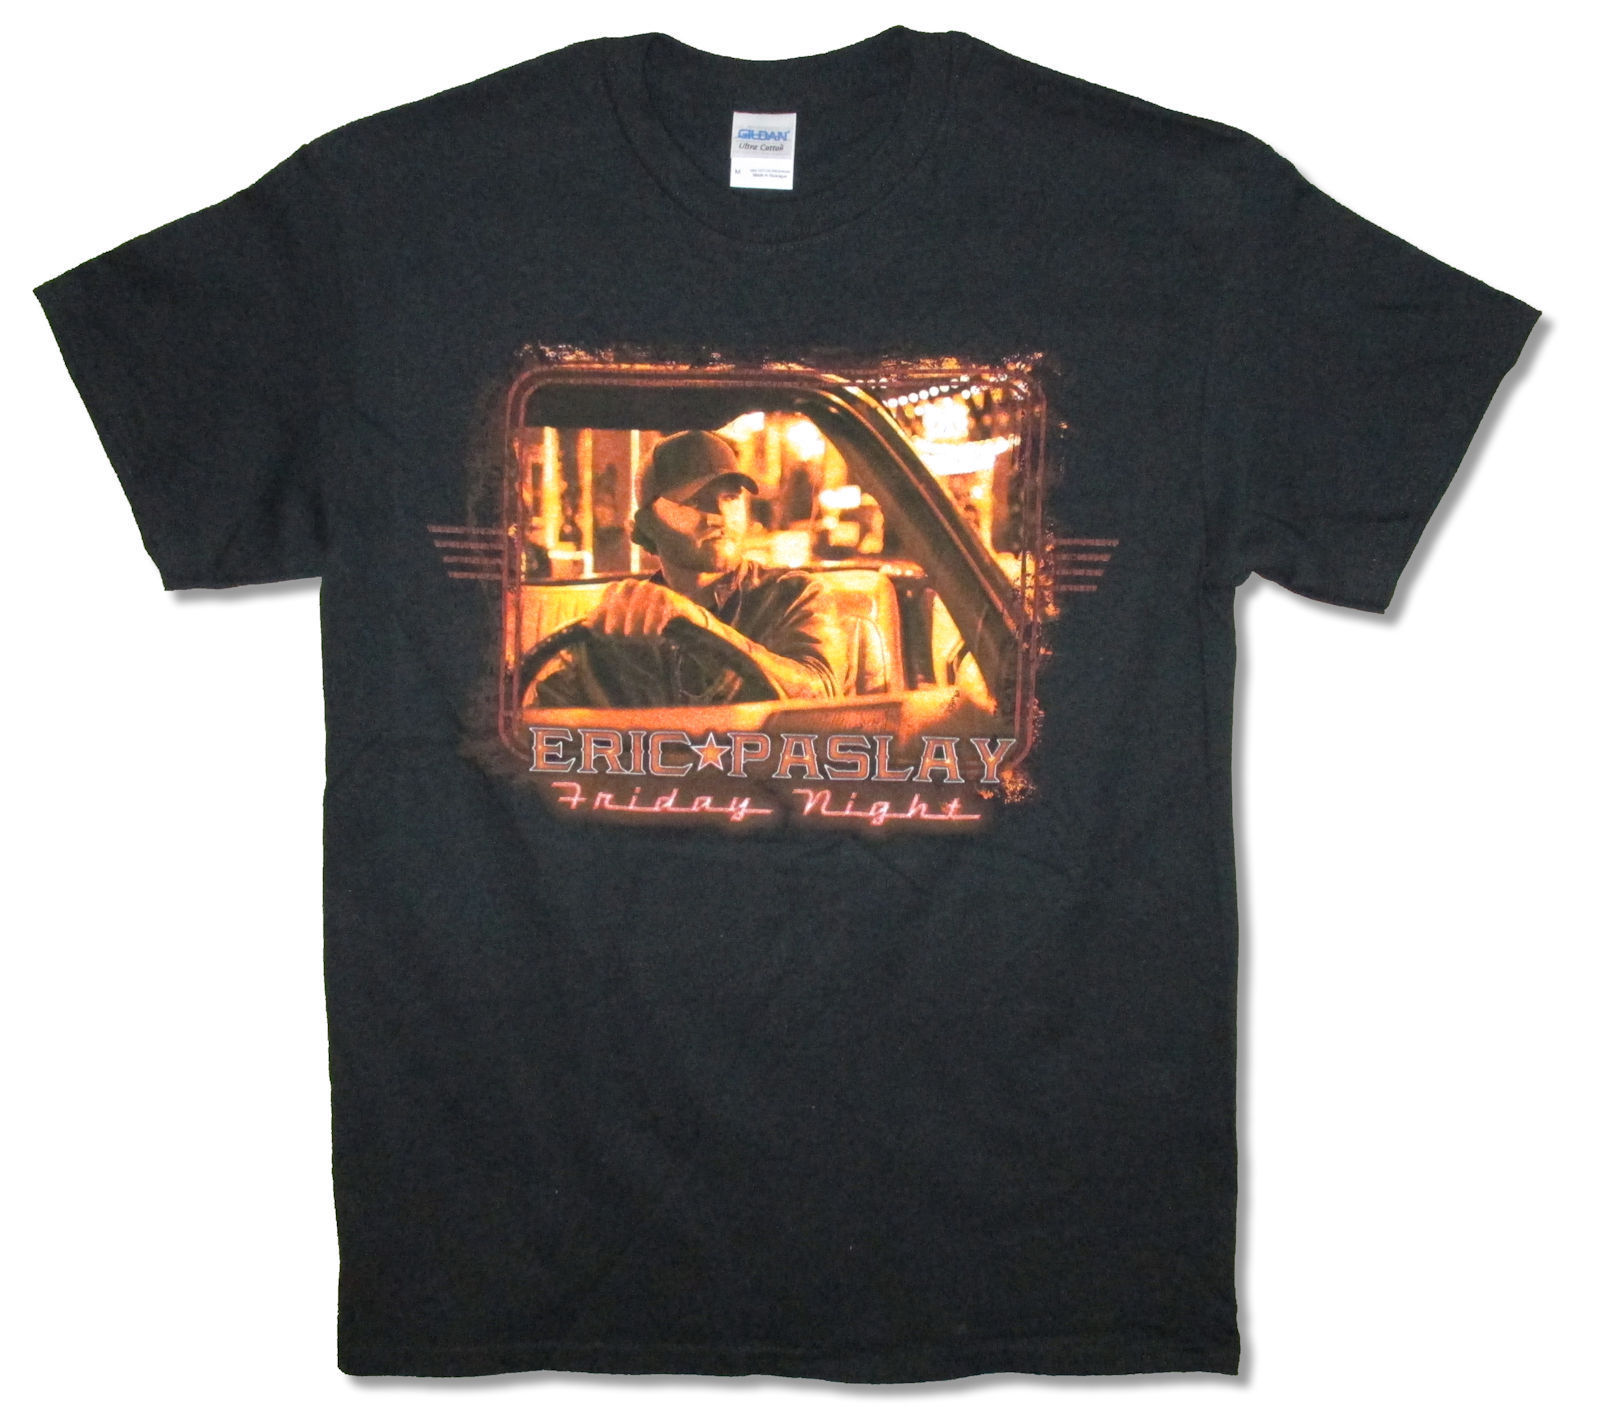 Eric Paslay Friday Night Sweet Ride Black T Shirt New Official Merch